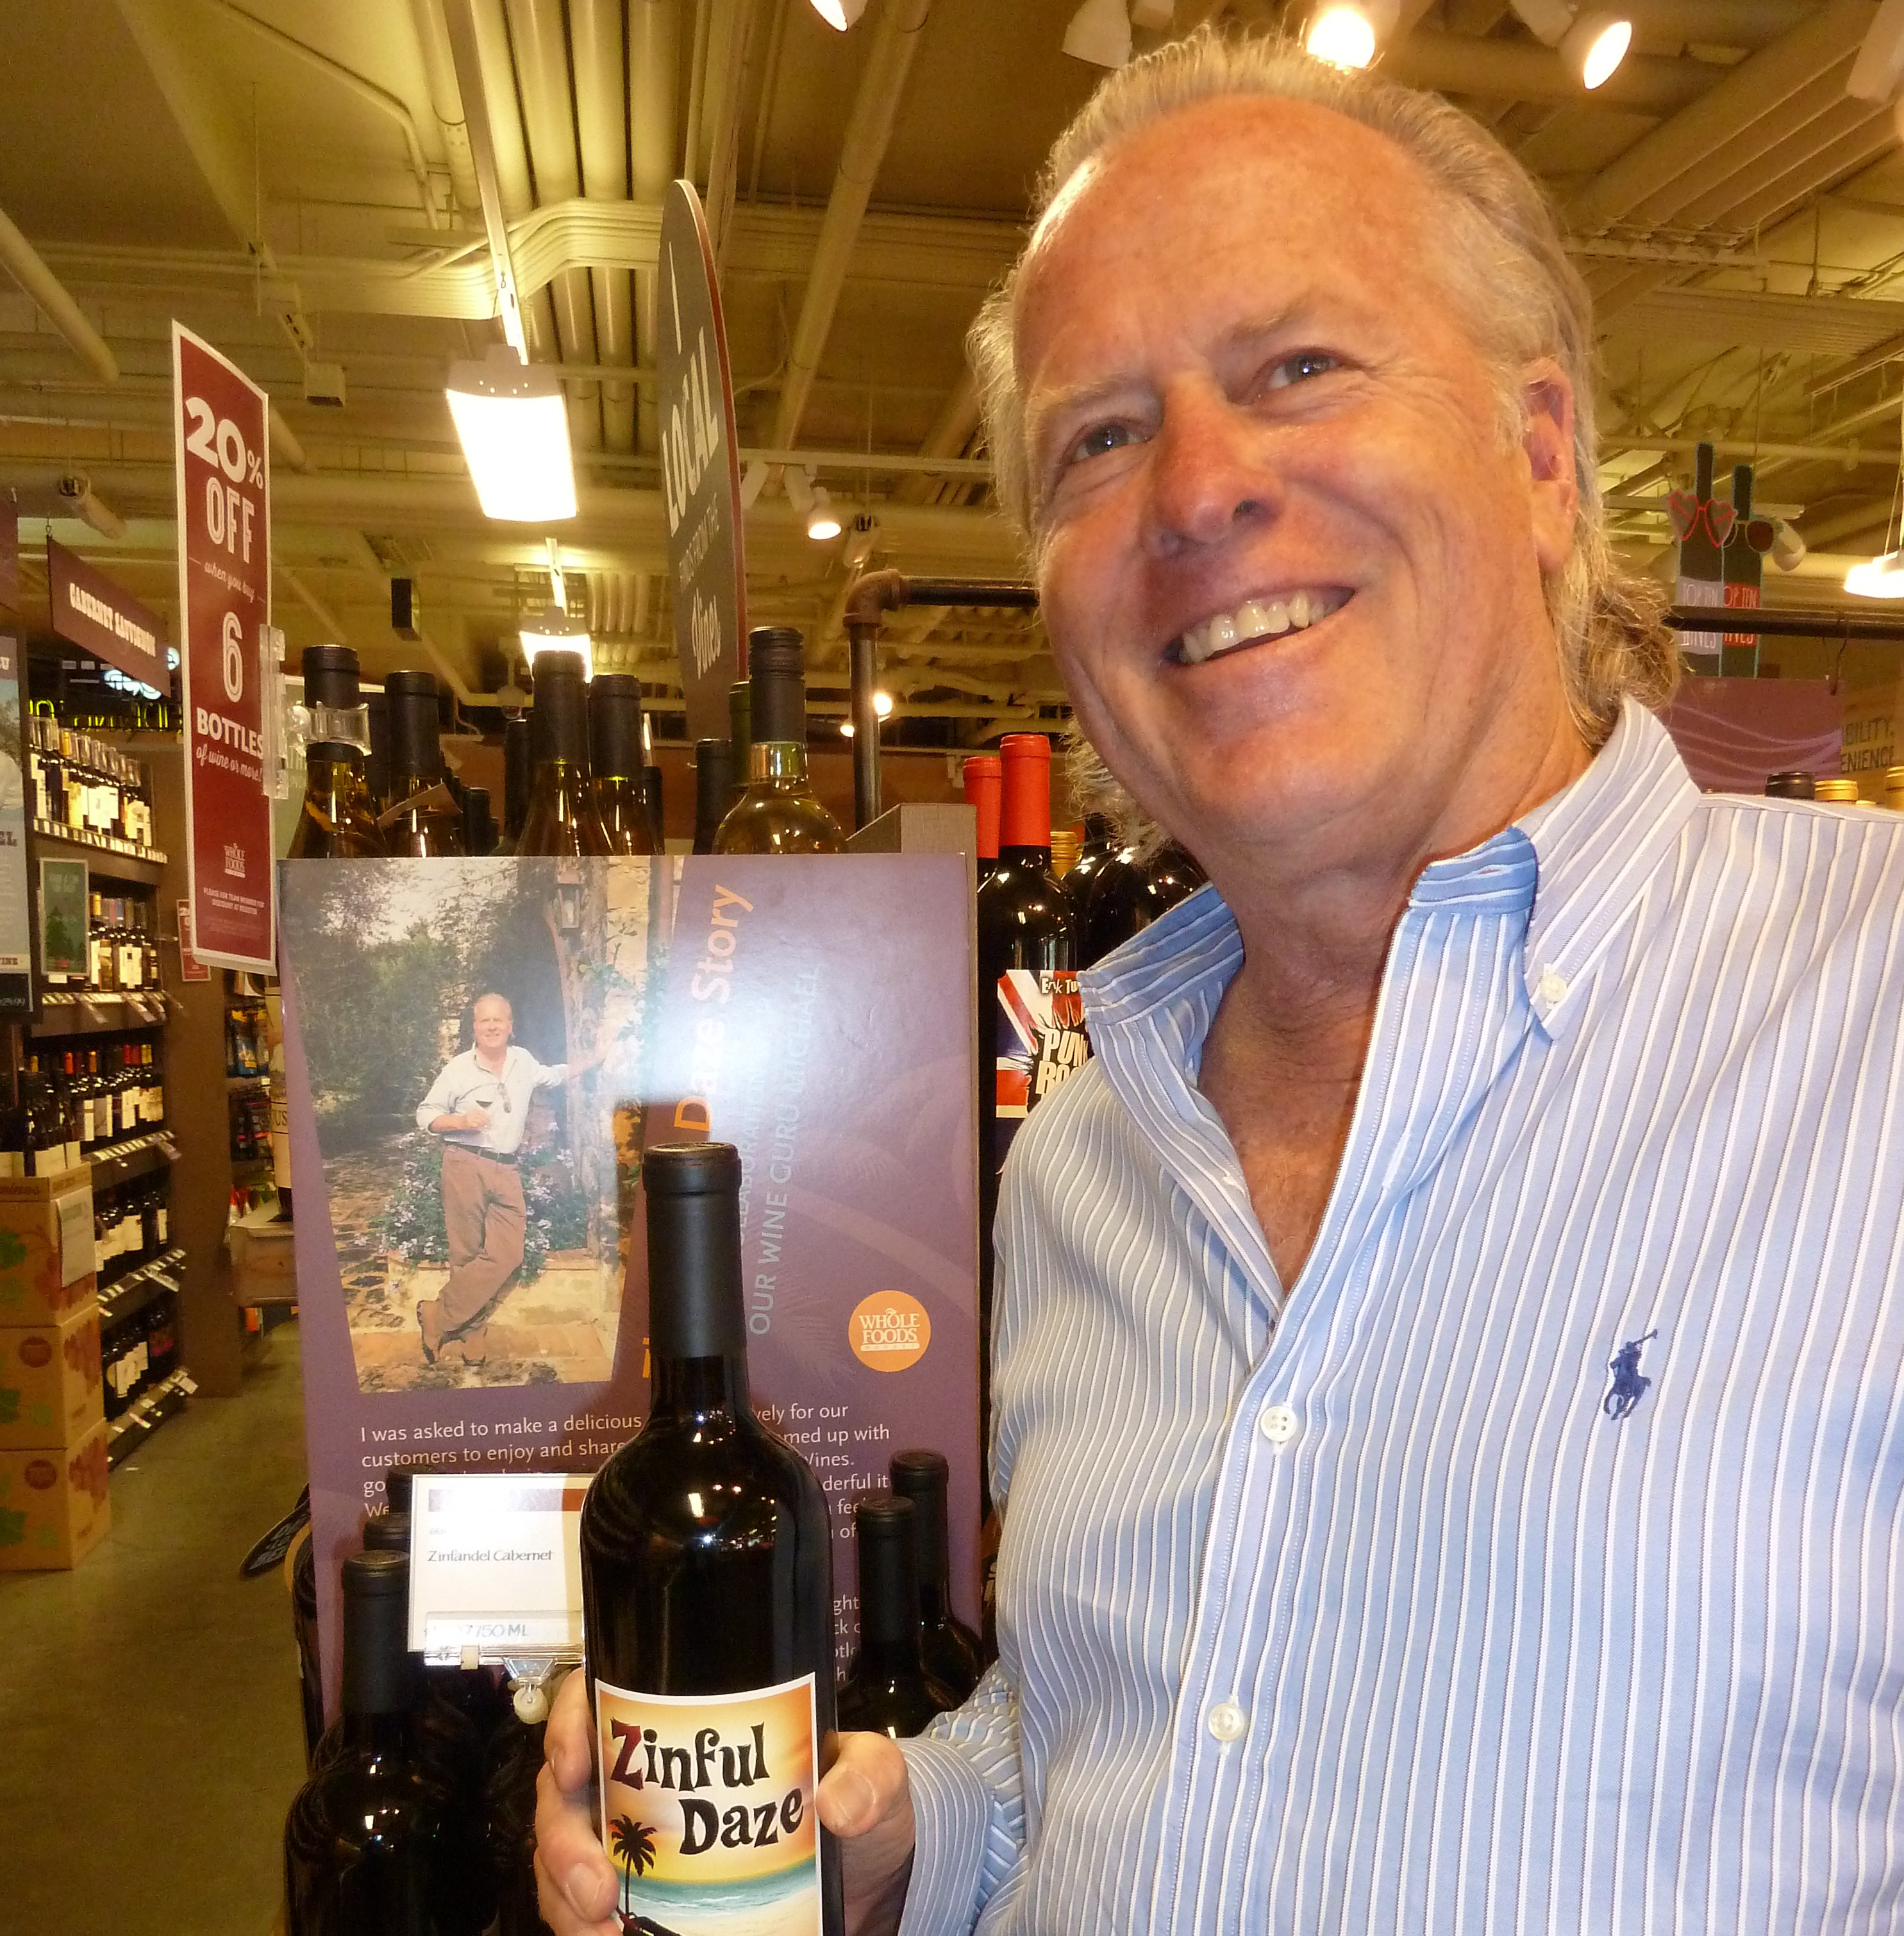 Taste of Wine: Wine guru discovered at Whole Foods